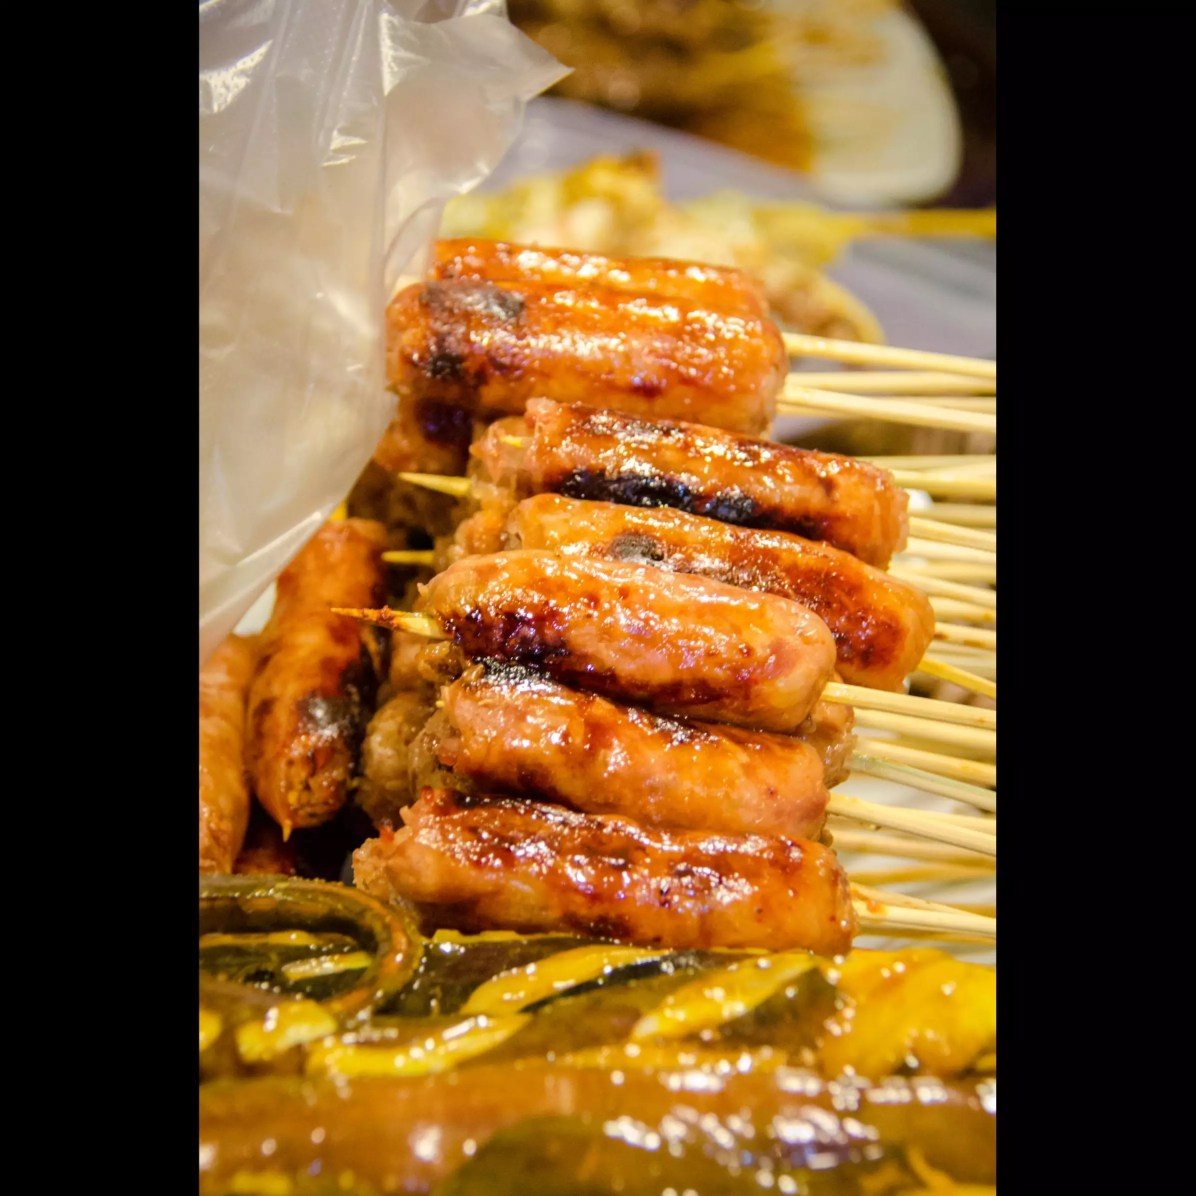 Bangkok Thai Cuisine: Isan Sausages on a Stick